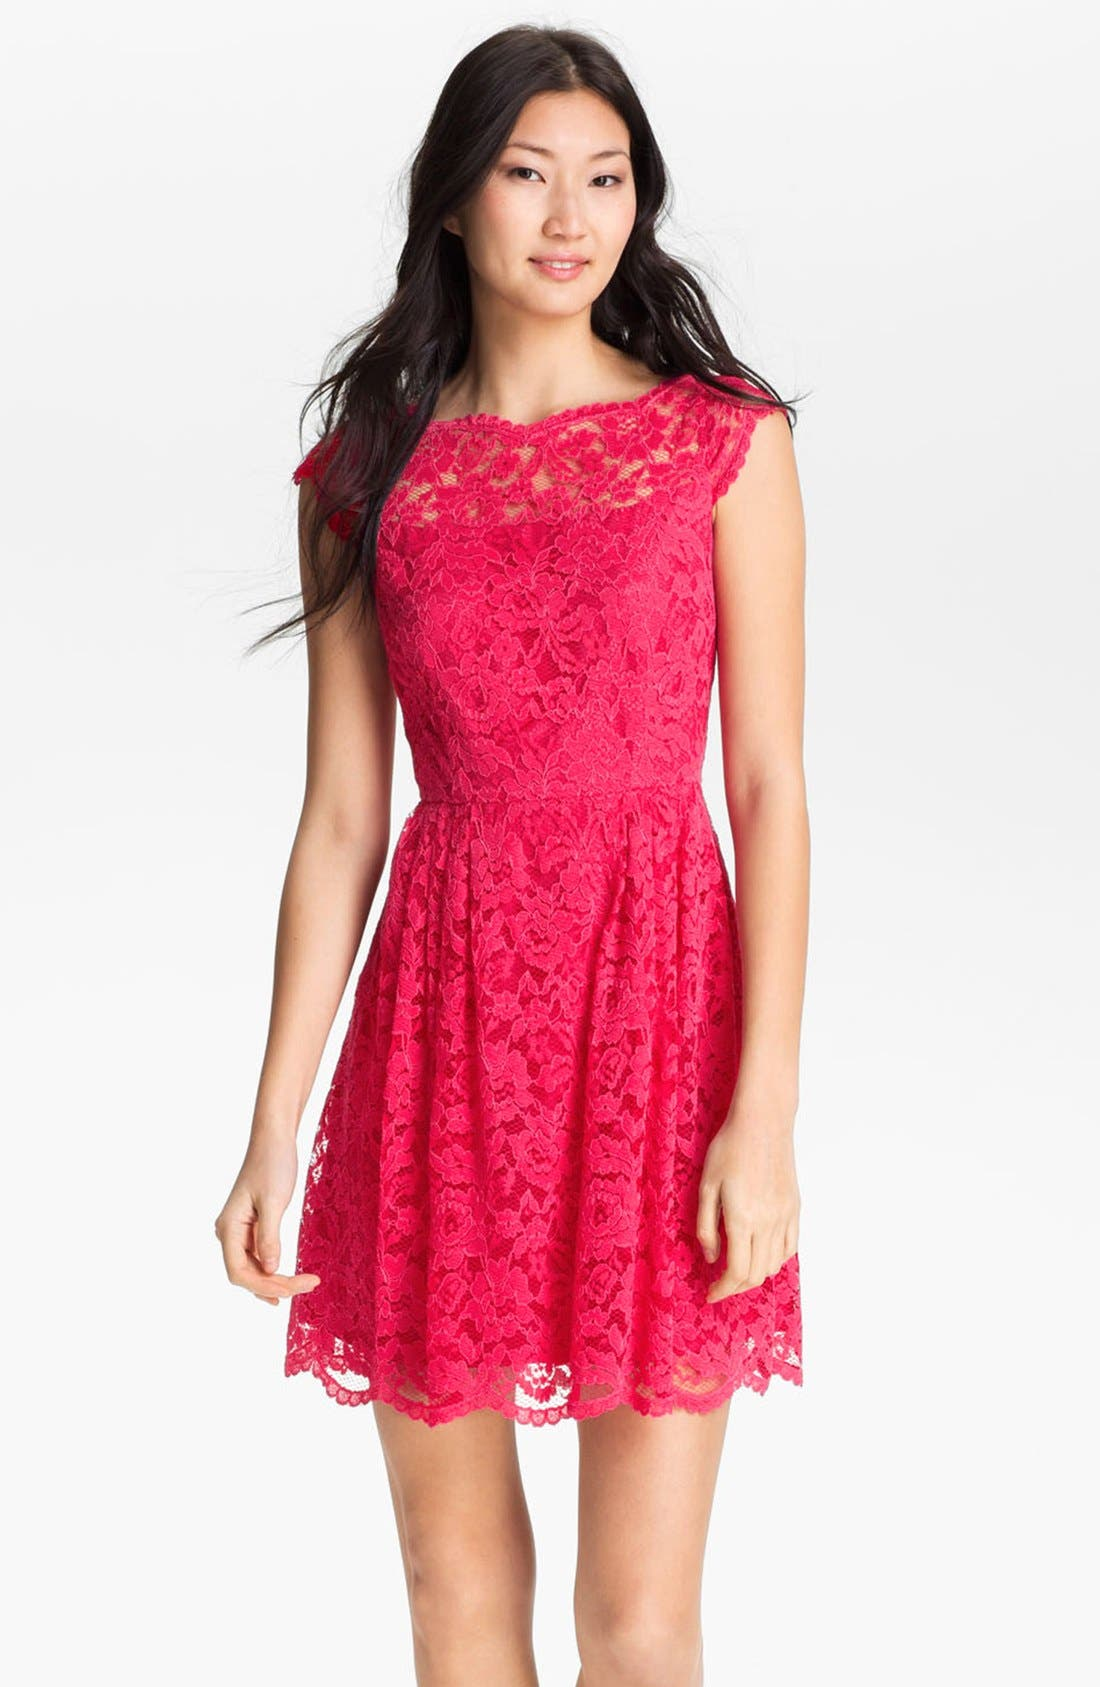 Alternate Image 1 Selected - Cynthia Steffe Lace Fit & Flare Dress